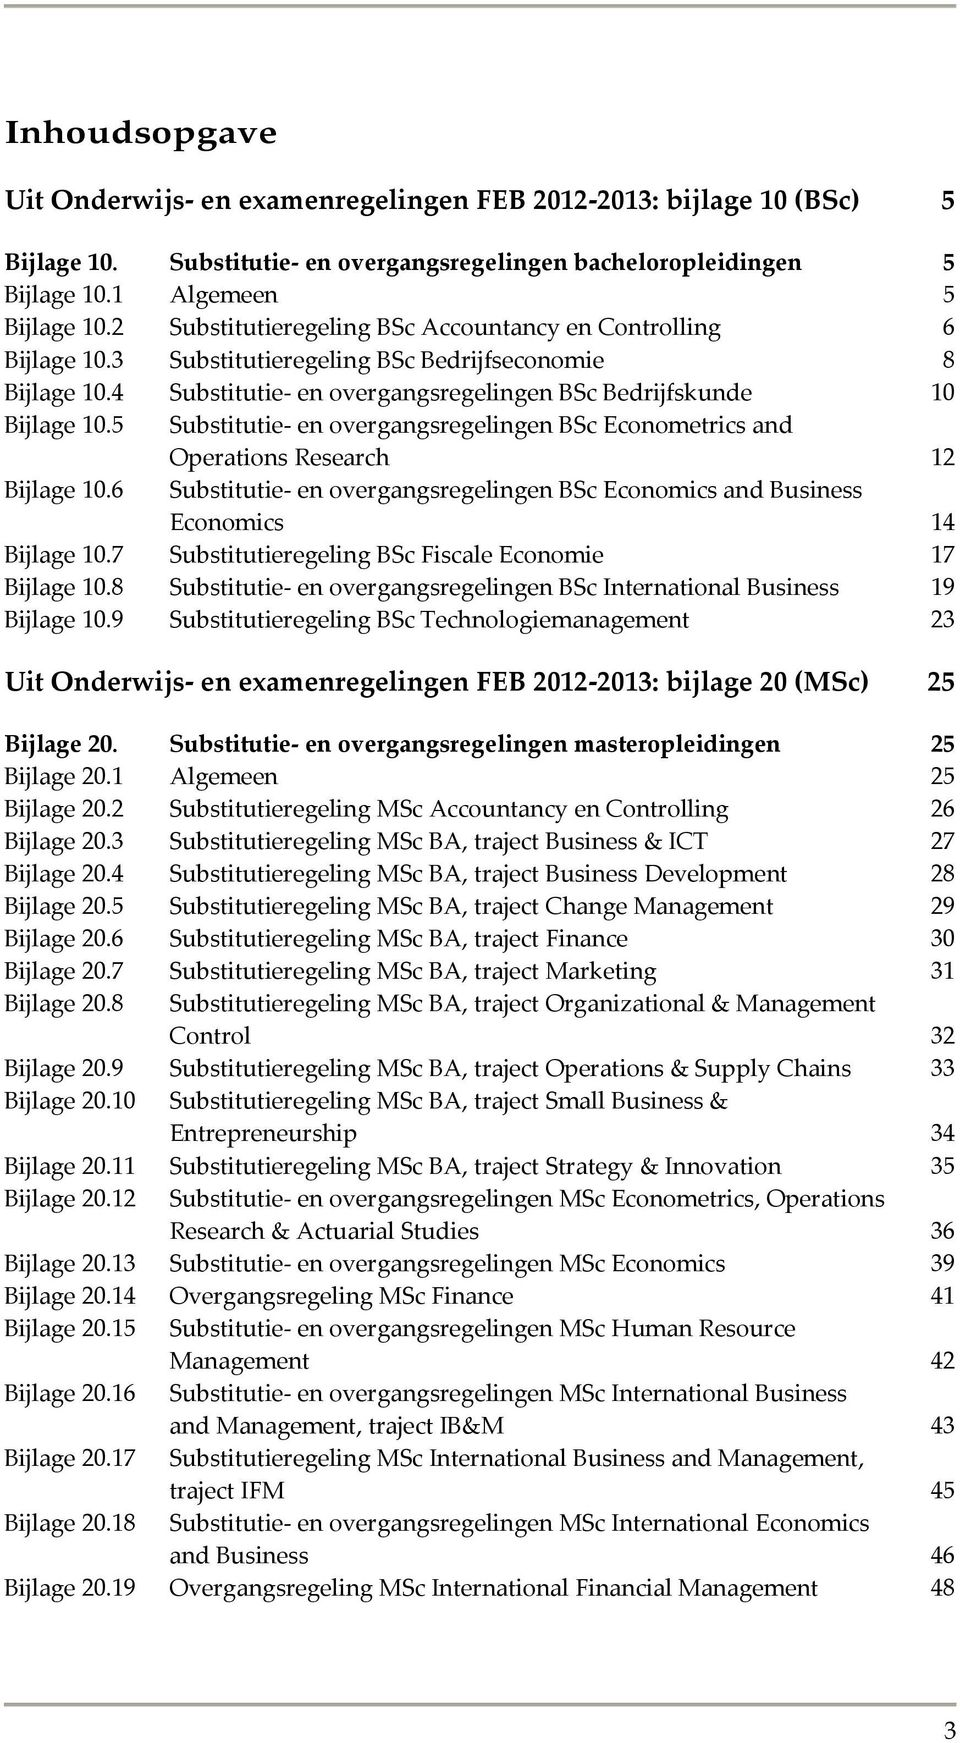 5 Substitutie- overgangsregeling BSc Econometrics and Operations Research 12 Bijlage 10.6 Substitutie- overgangsregeling BSc Economics and Business Economics 14 Bijlage 10.